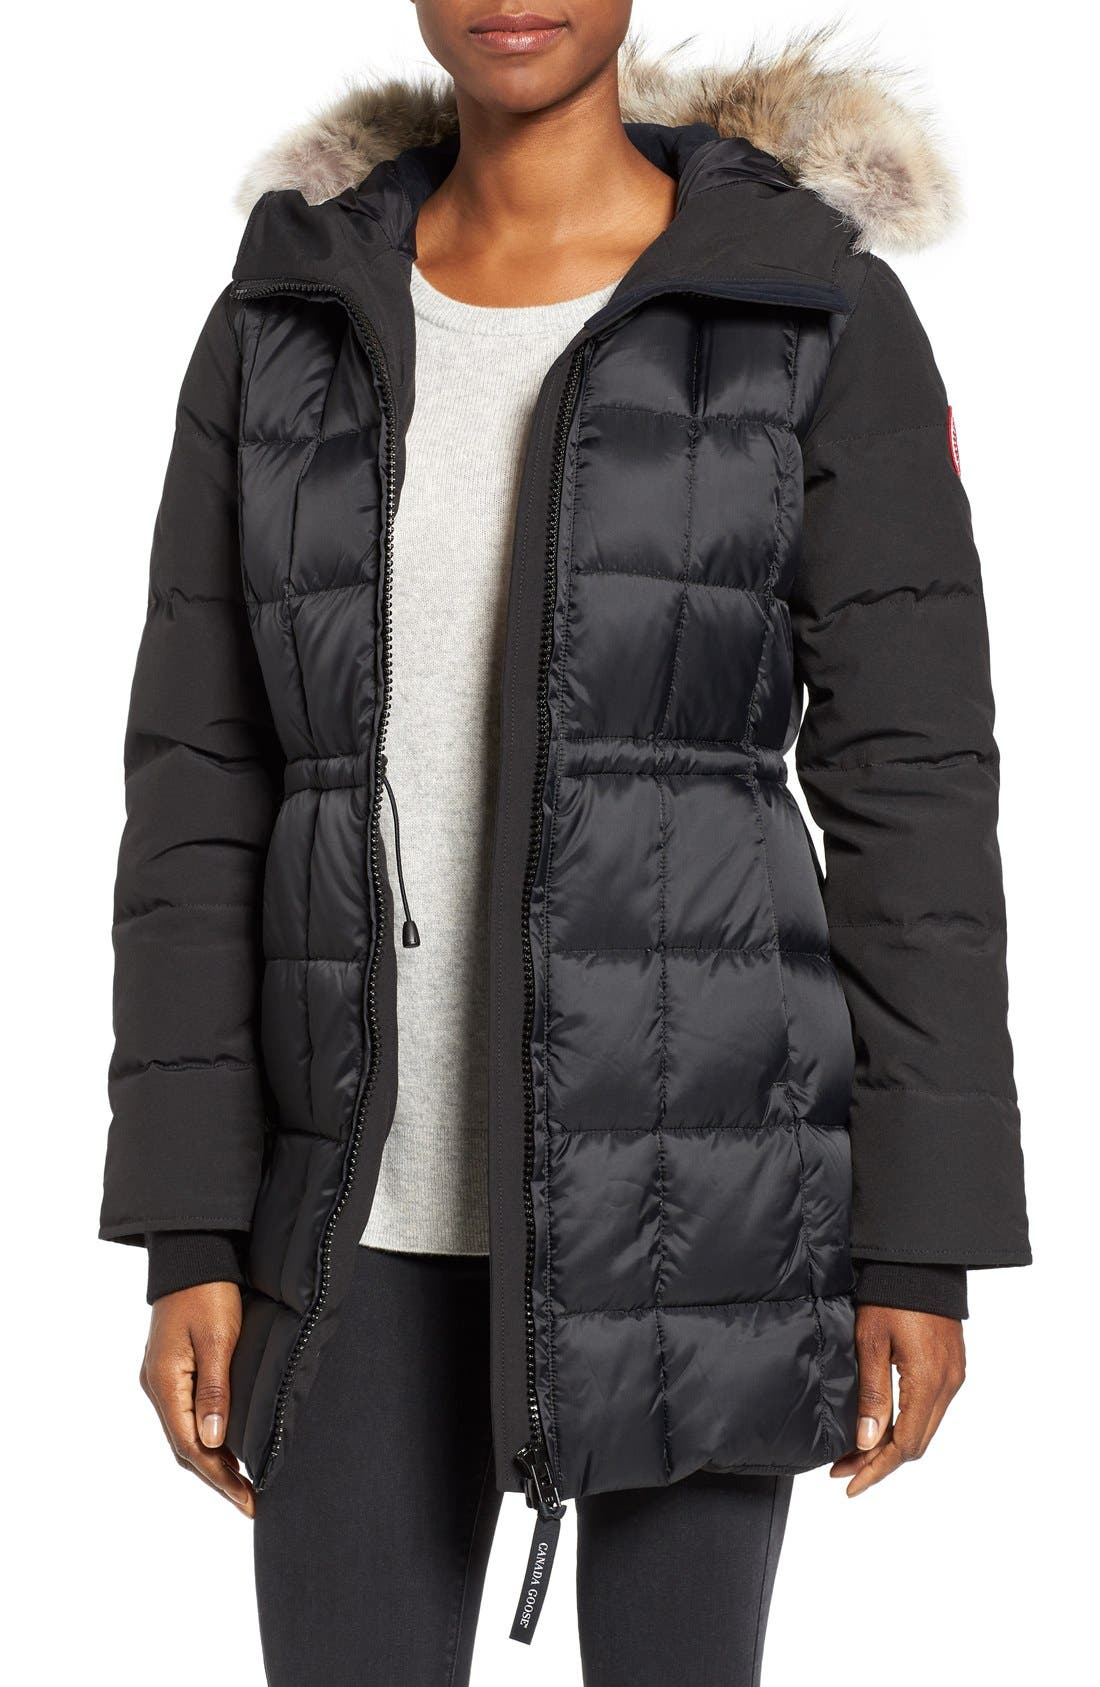 CANADA GOOSE, Beechwood Down Parka with Genuine Coyote Fur Trim, Main thumbnail 1, color, BLACK